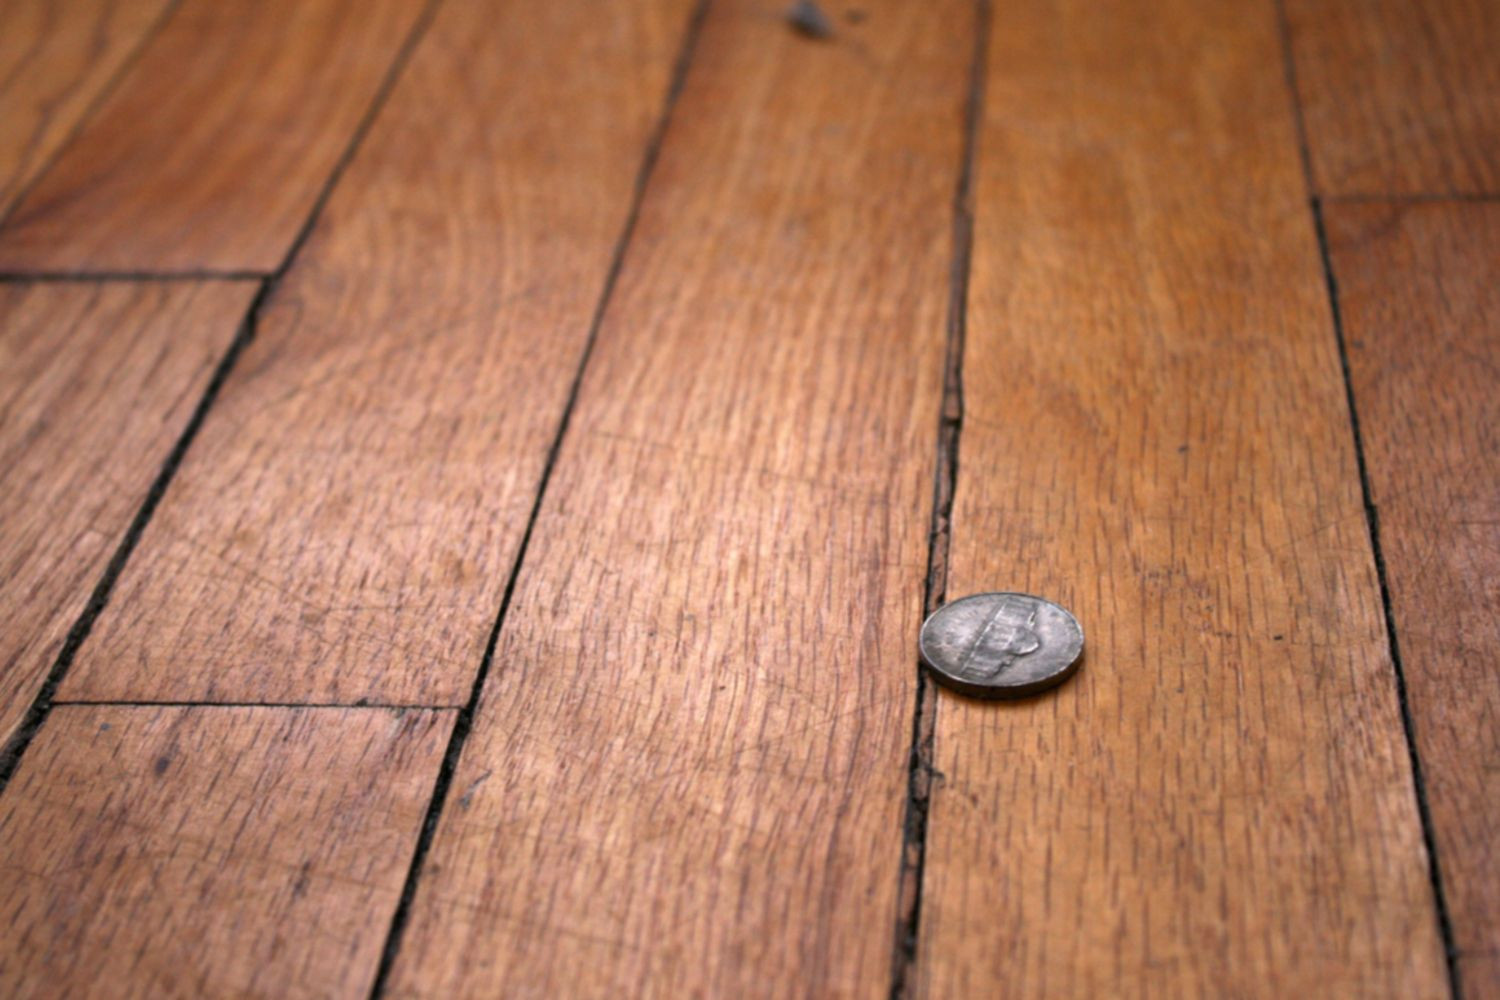 installing glue down hardwood floors on concrete of why your engineered wood flooring has gaps in wood floor with gaps between boards 1500 x 1000 56a49eb25f9b58b7d0d7df8d